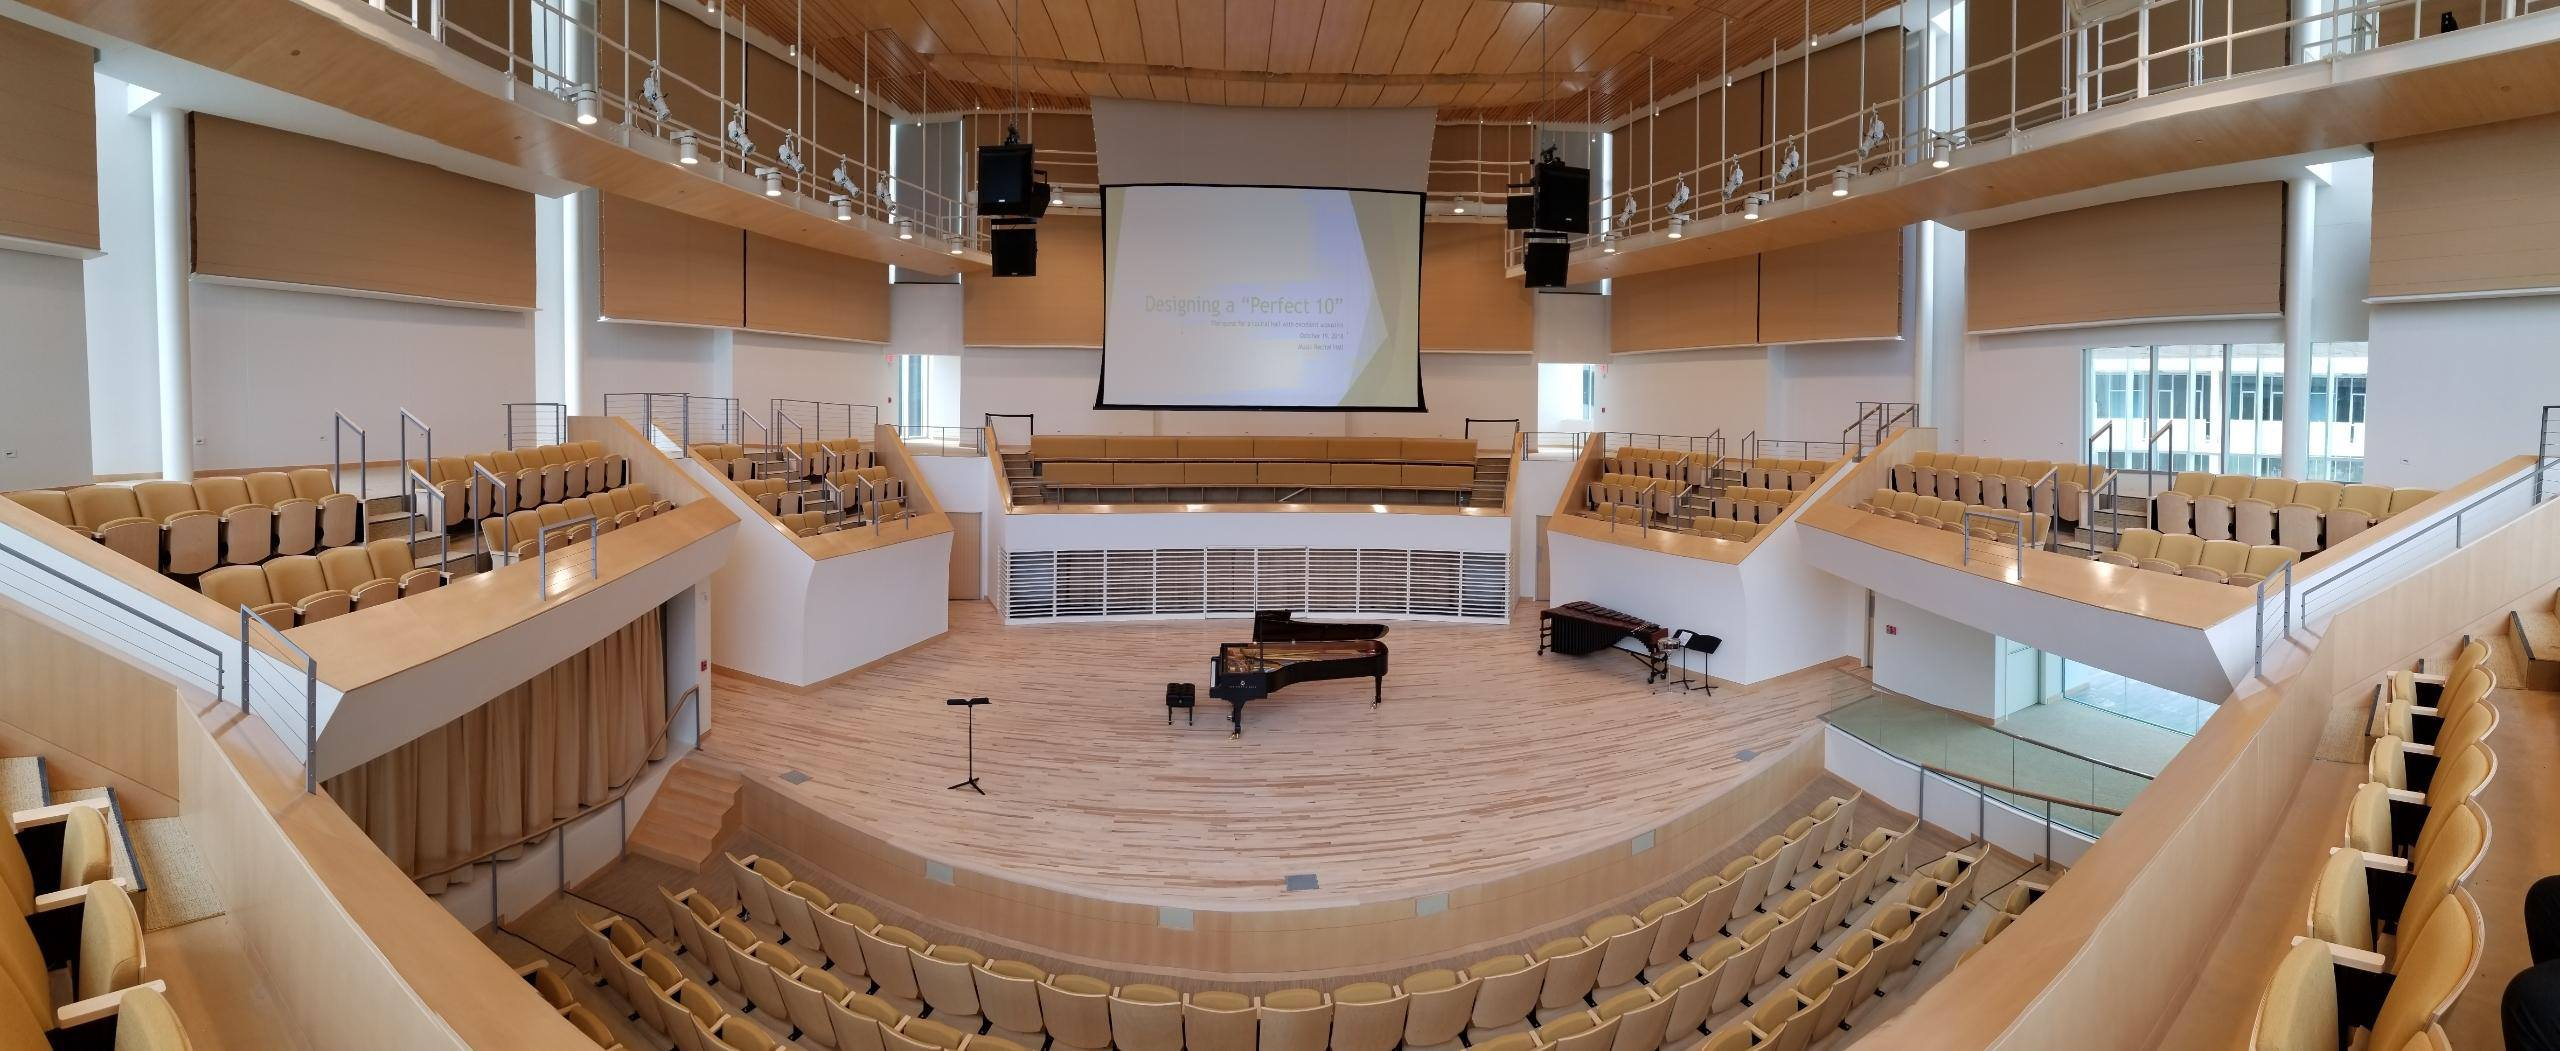 New Recital Hall